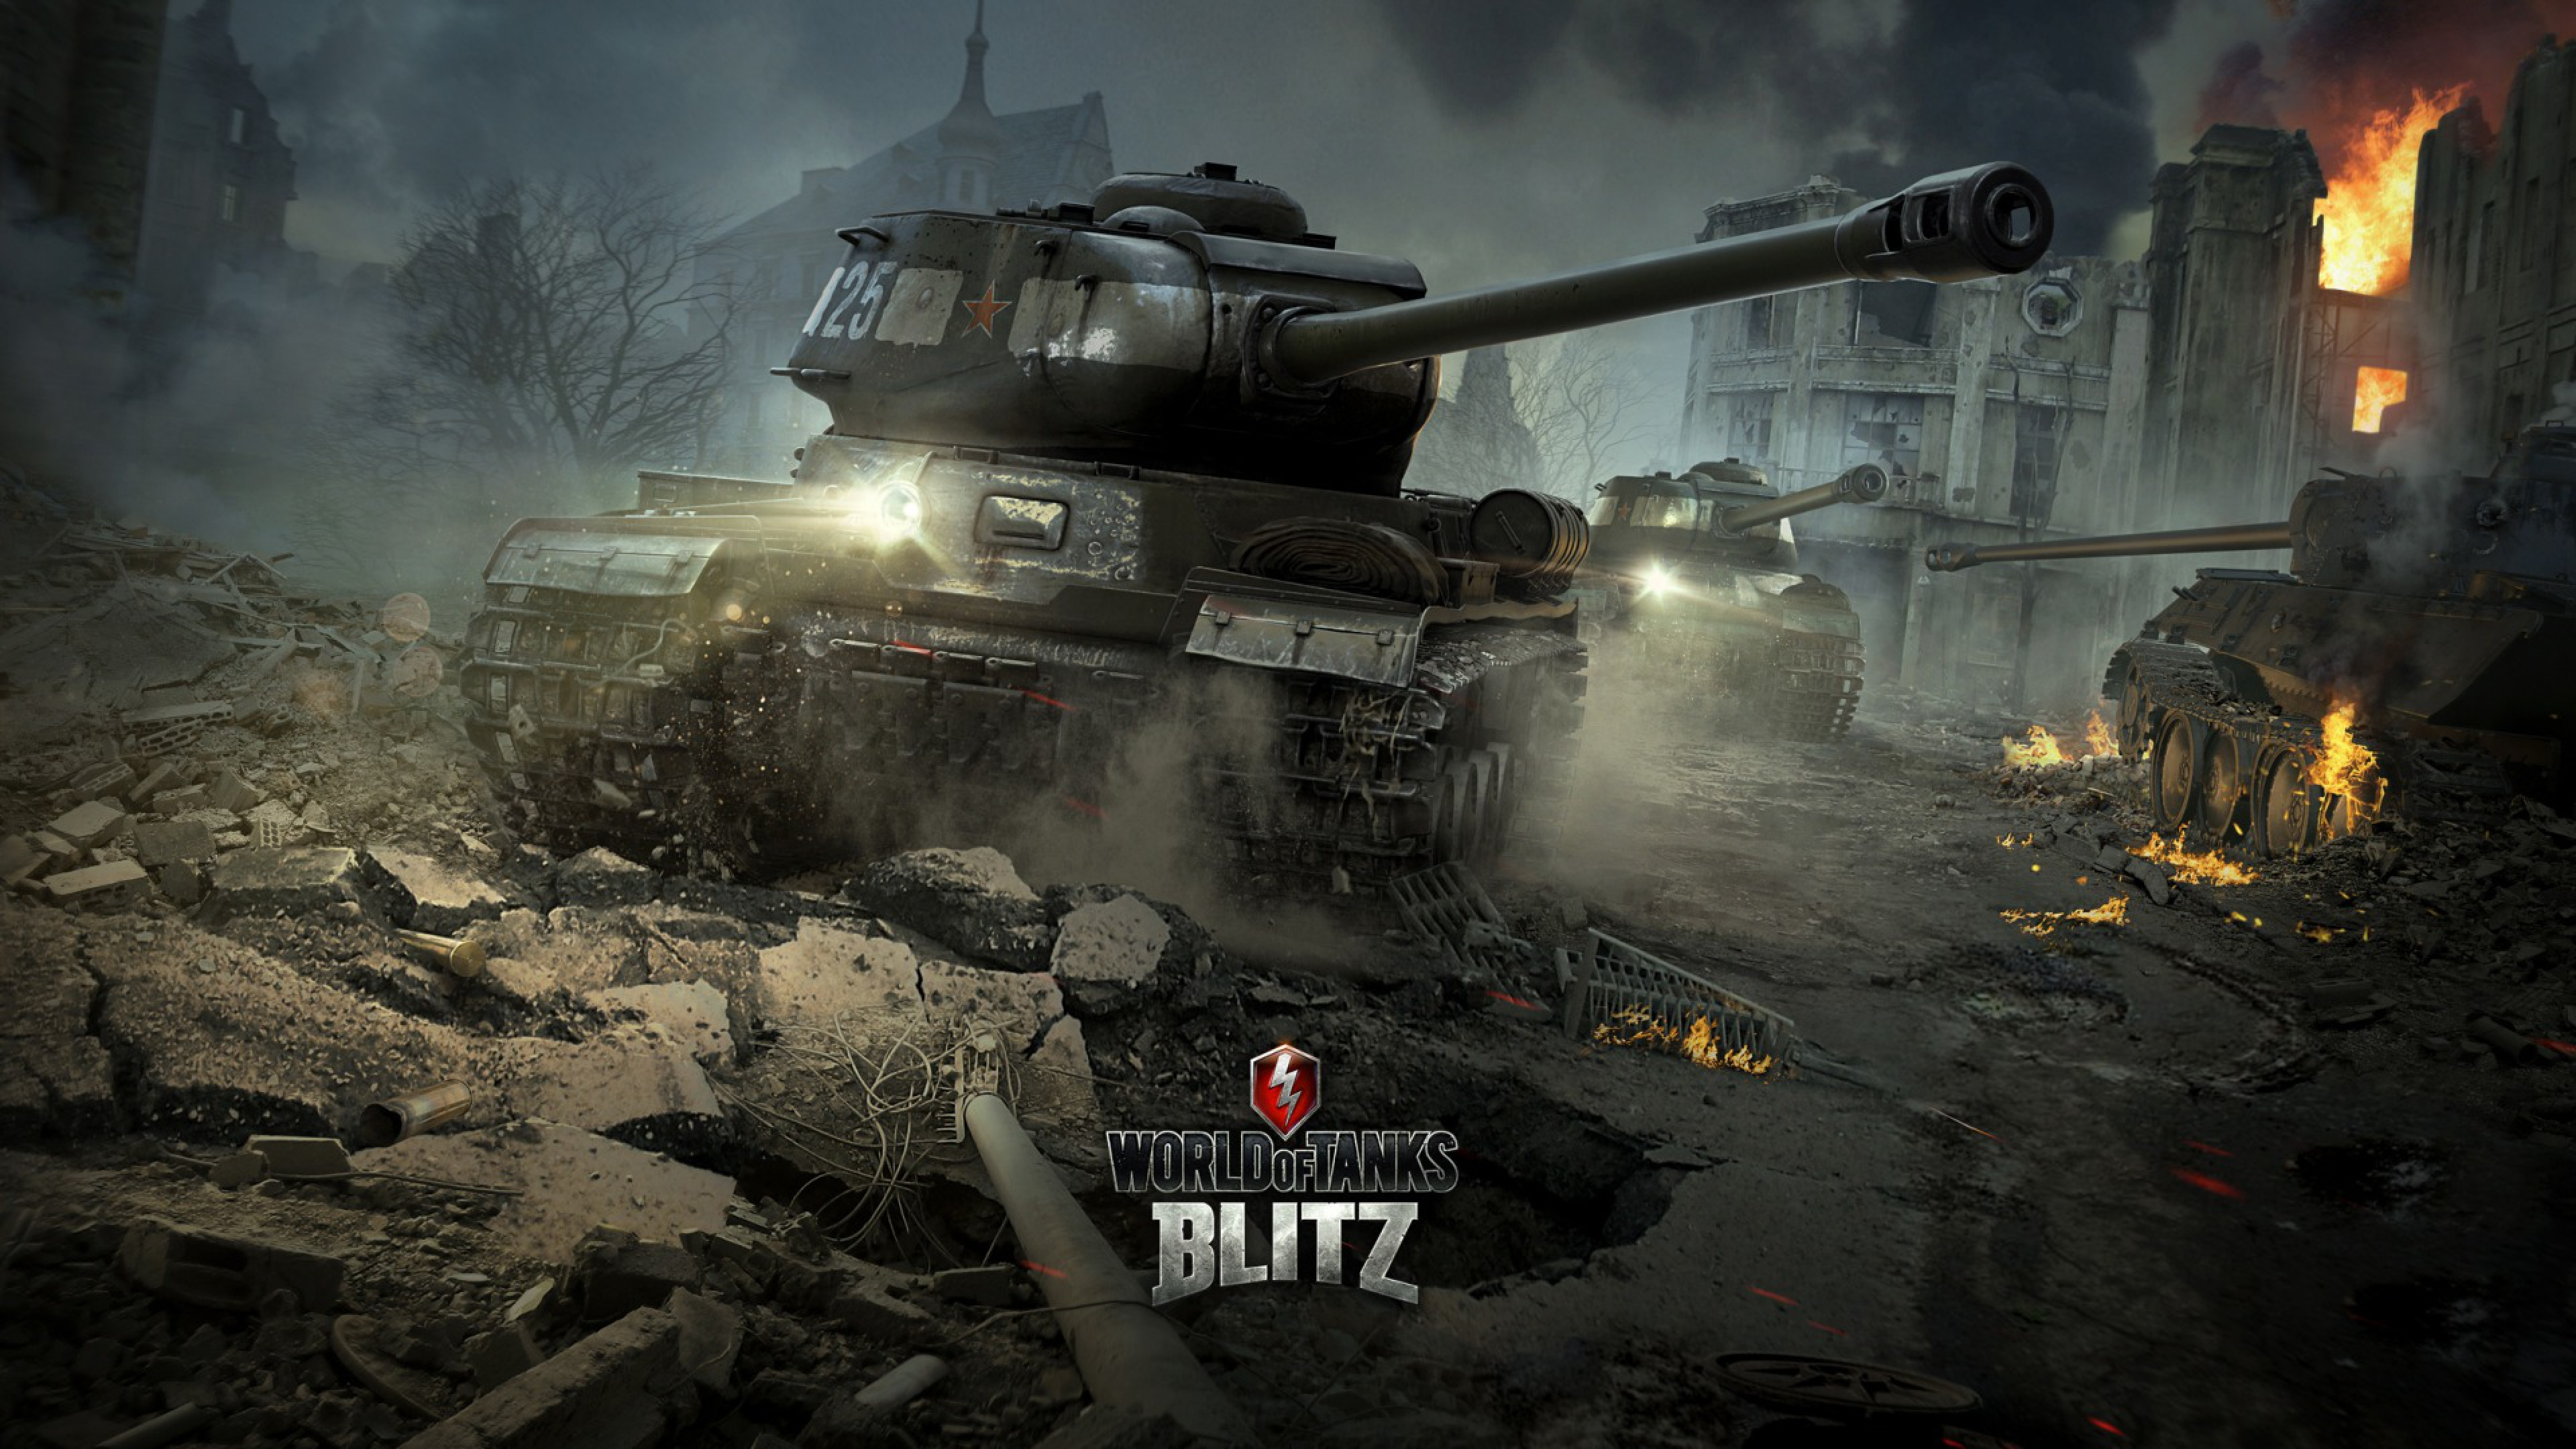 2016 world of tanks, hd games, 4k wallpapers, images, backgrounds